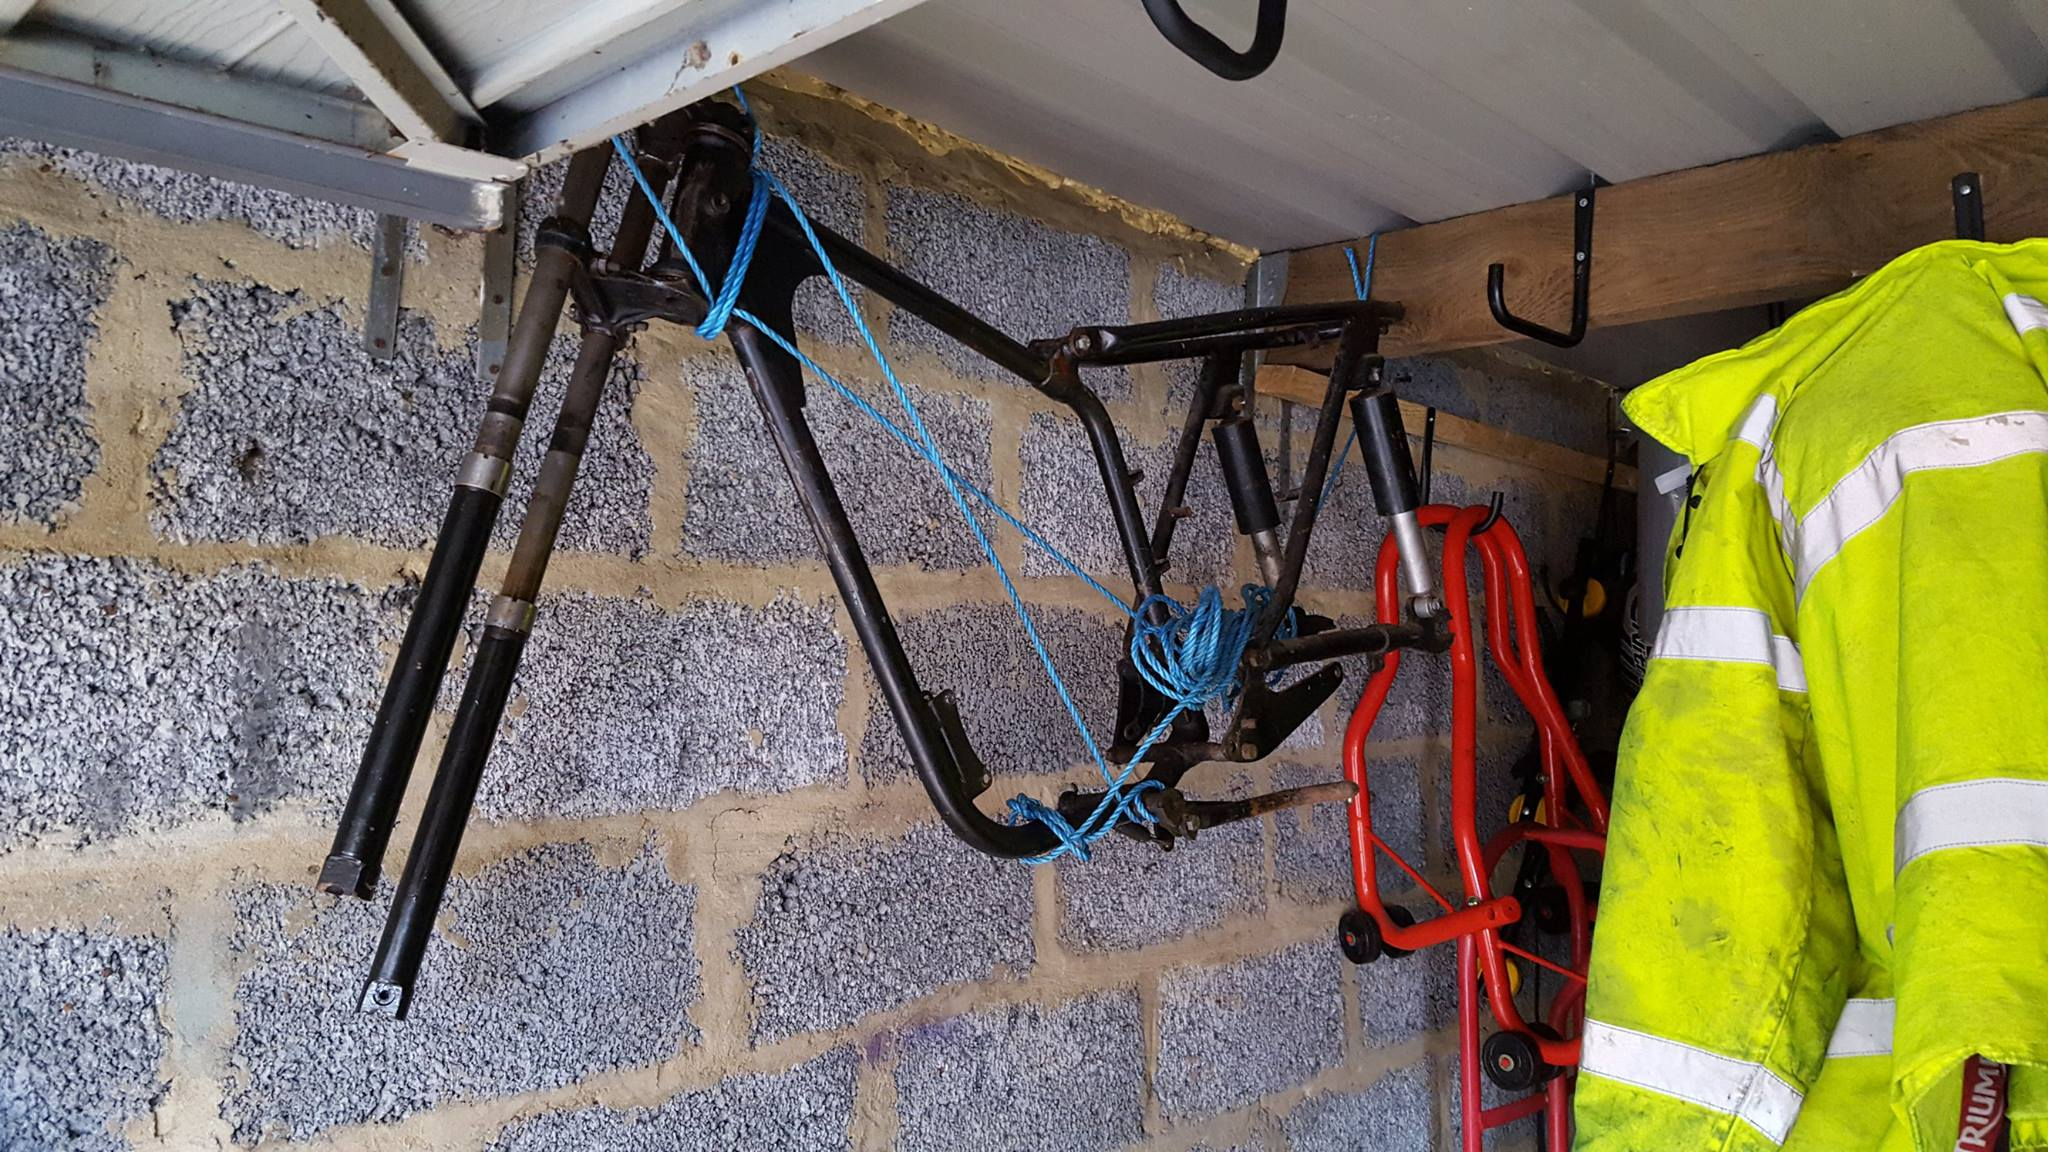 bantam frame 2 in garage